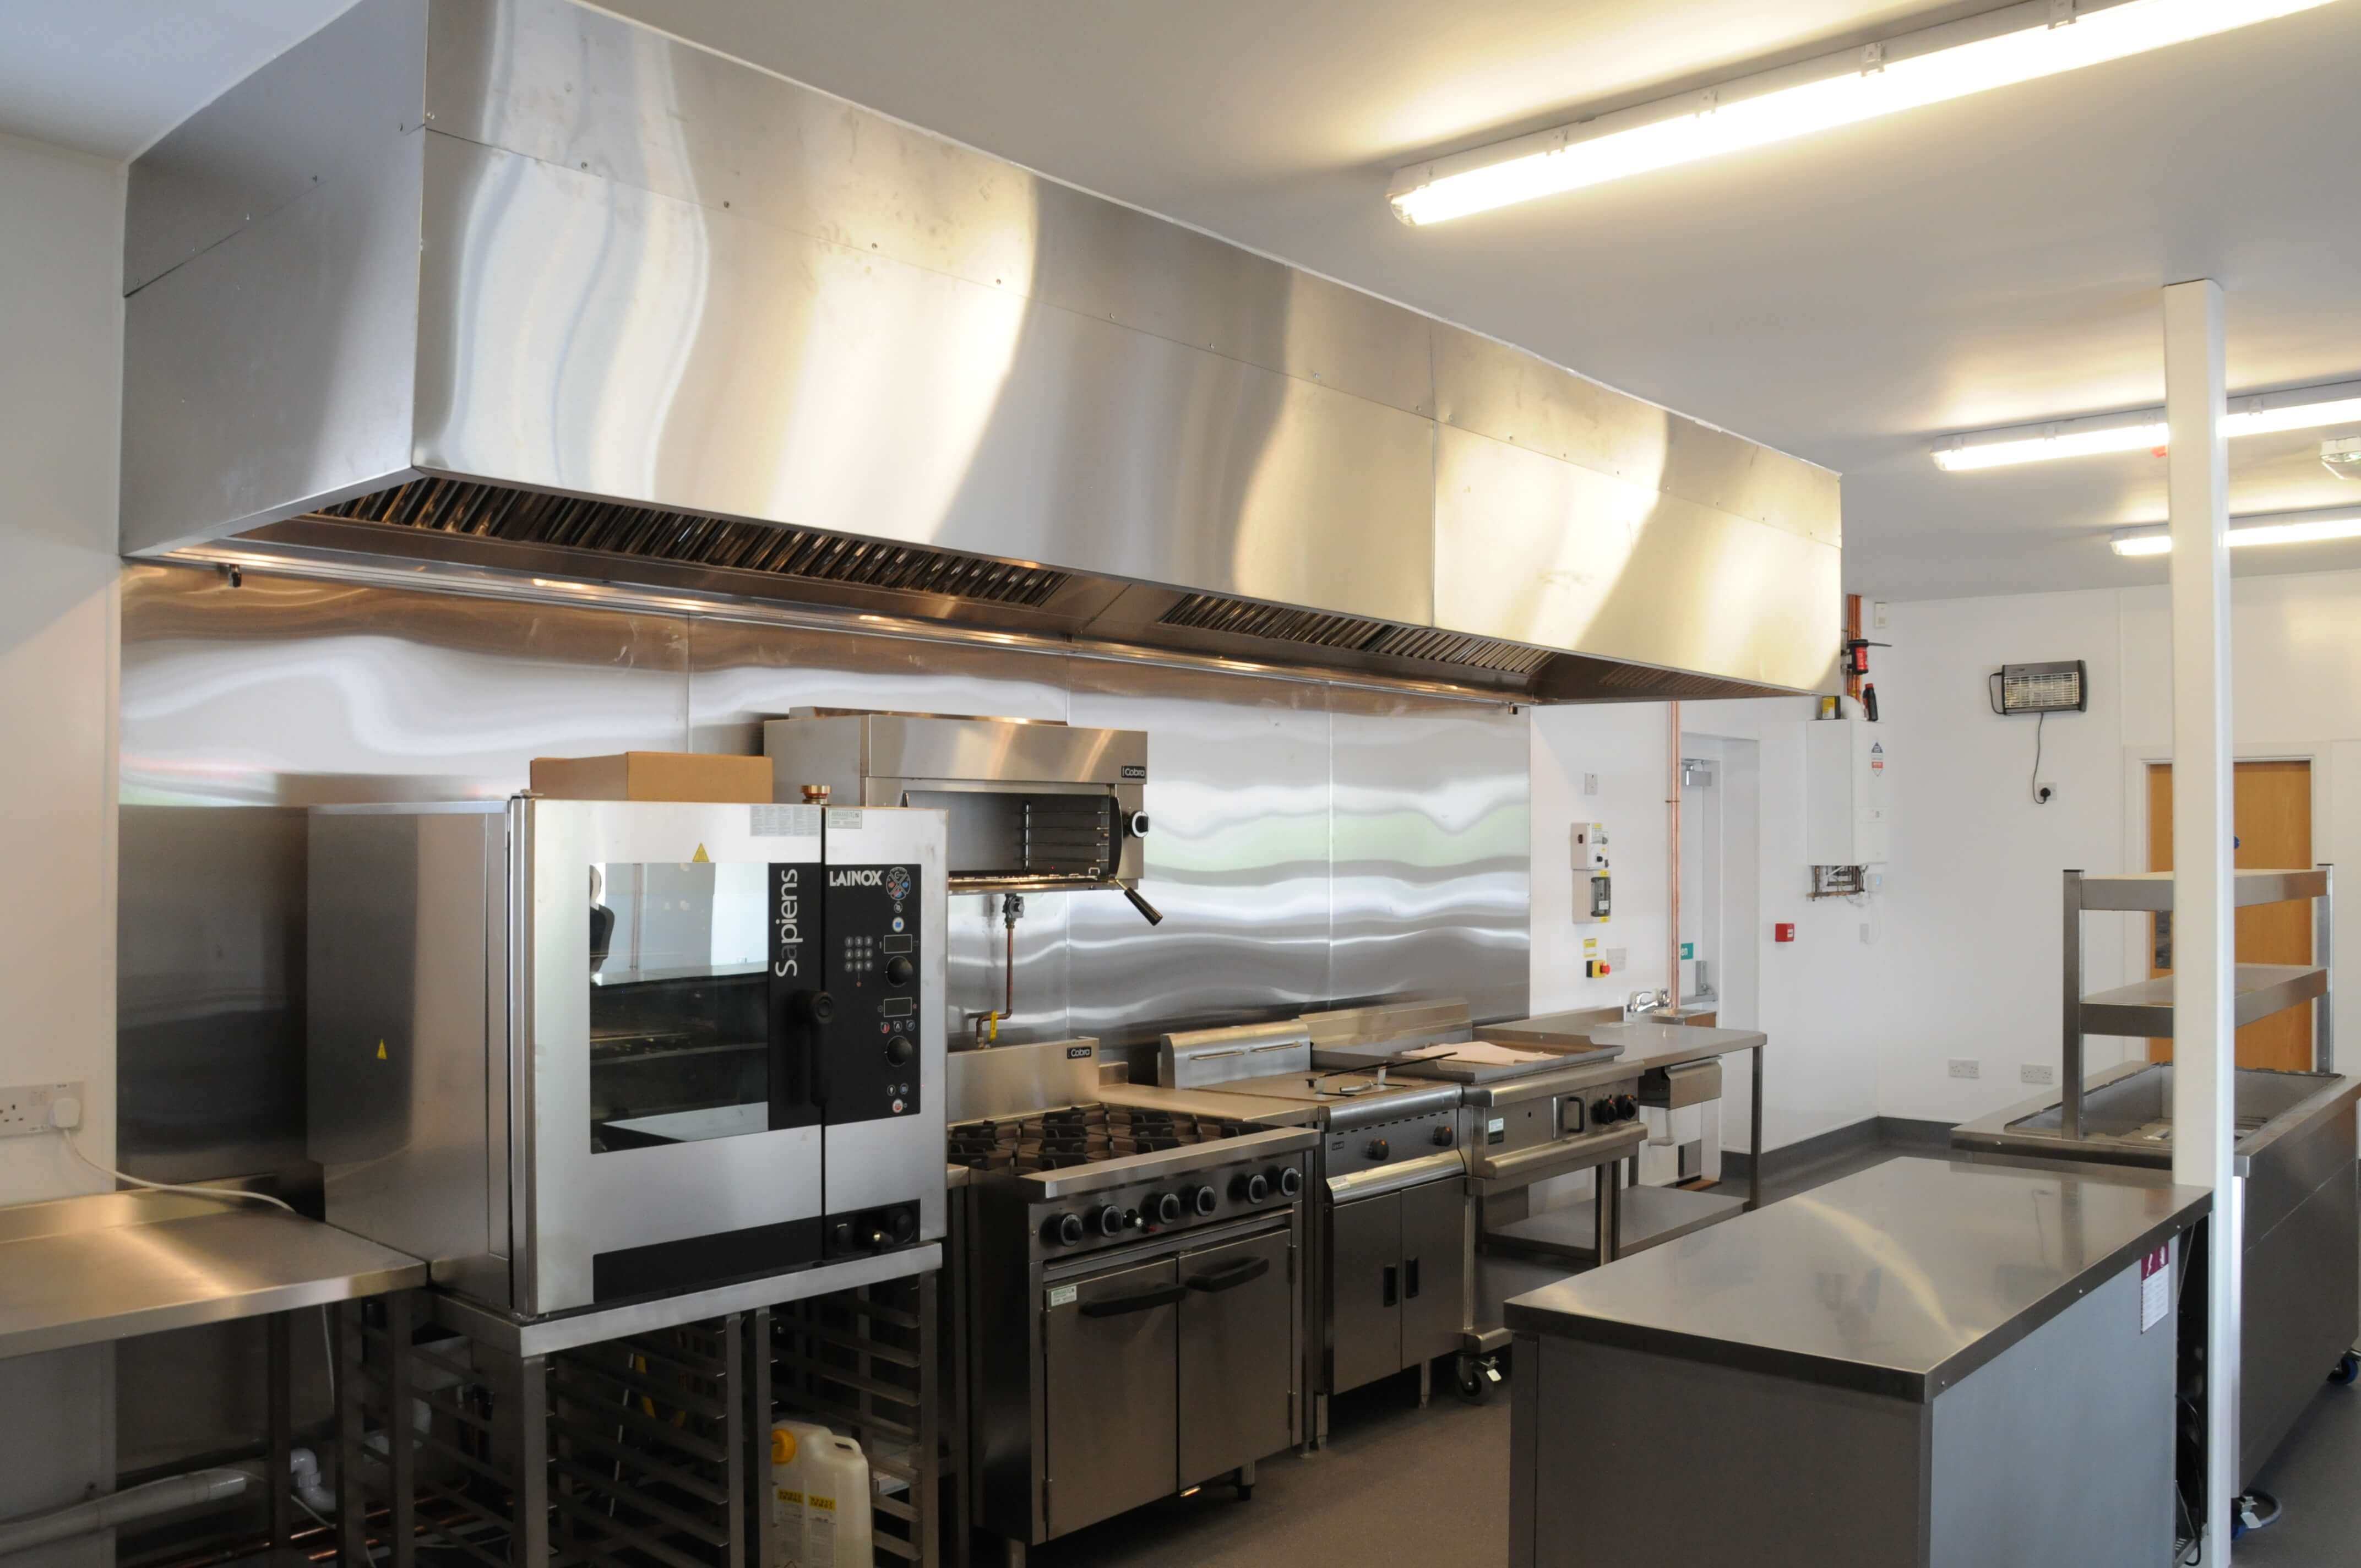 About abraxas catering equipment and installation specialists for Kitchen design specialists colorado springs